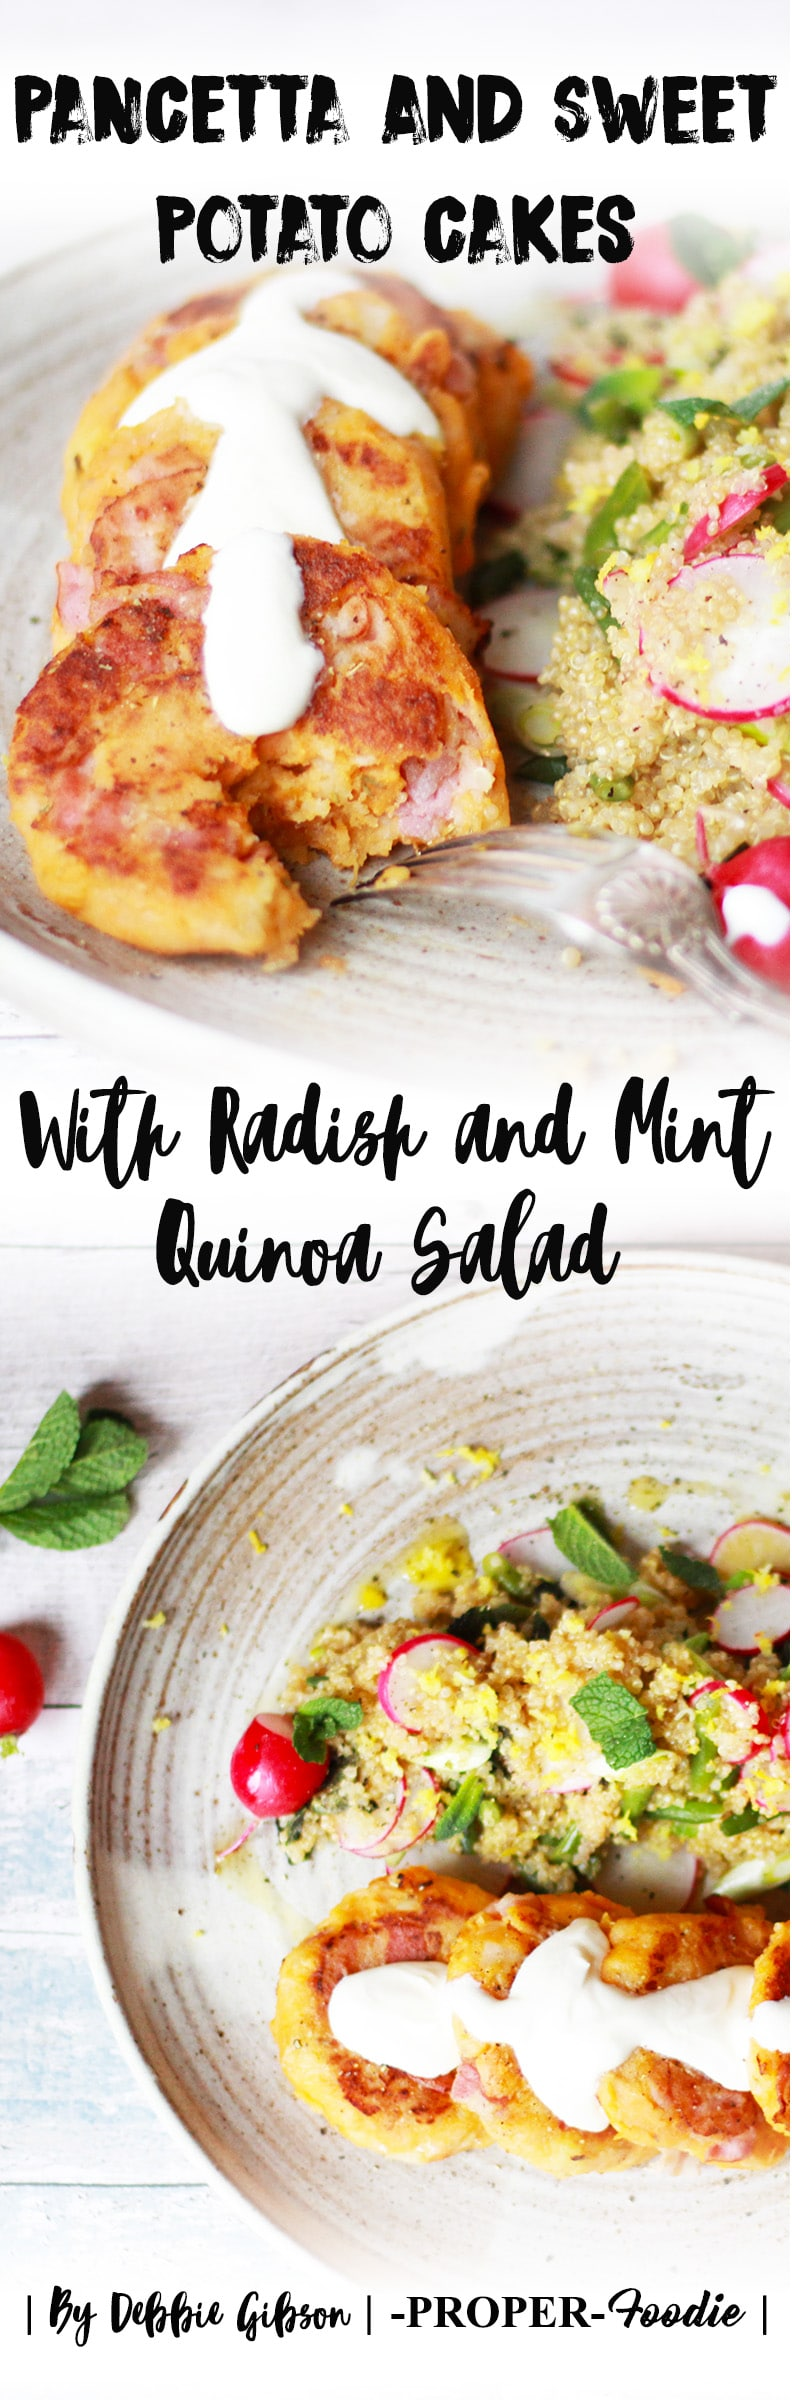 Pancetta and sweet potato cakes with radish and mint quinoa salad